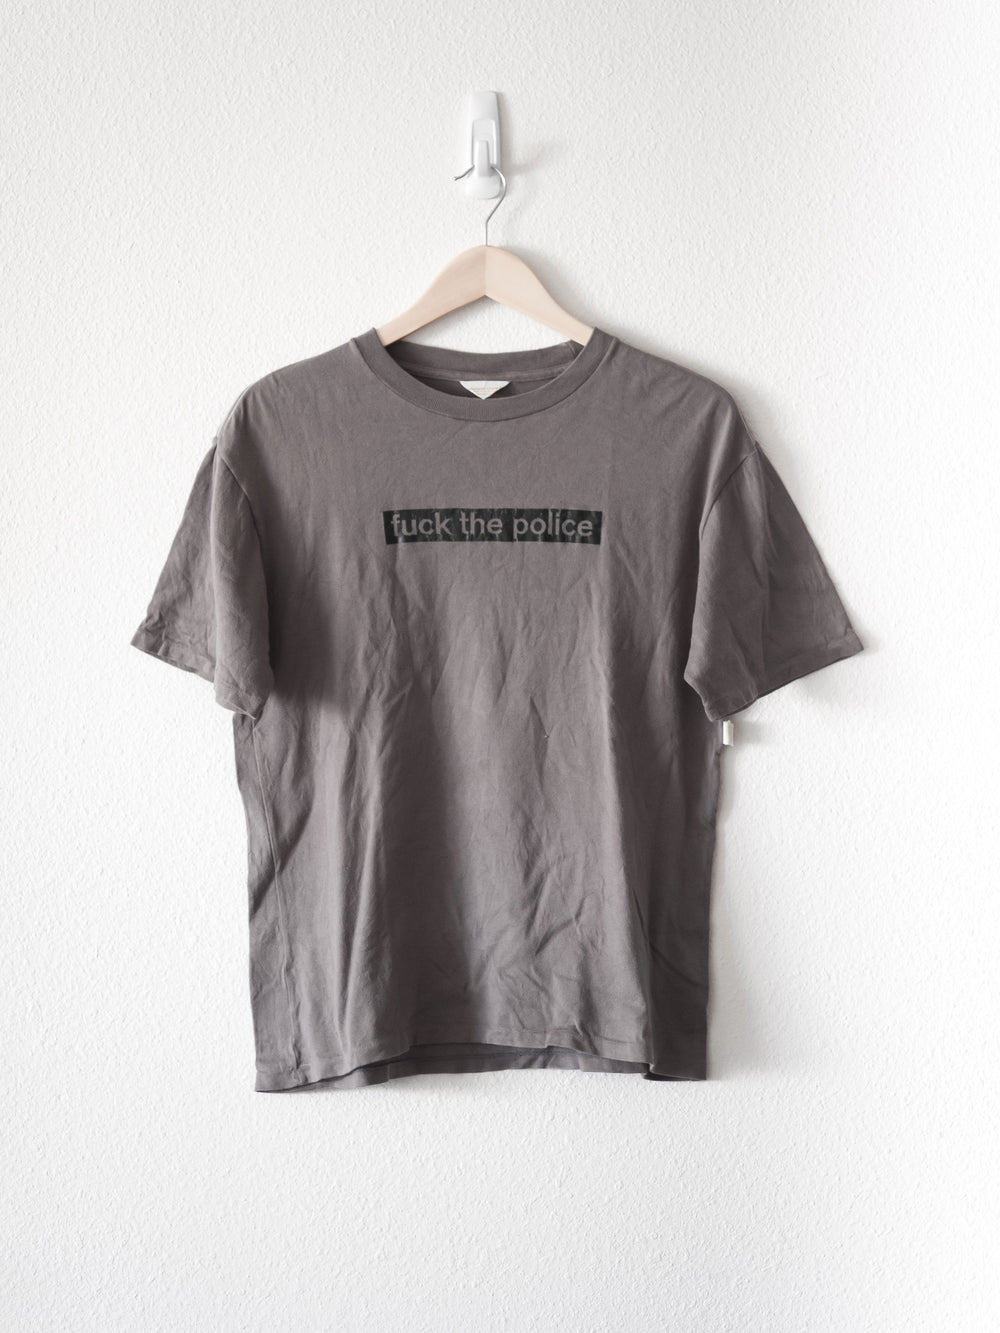 Undercover SS98 Fuck The Police Tee